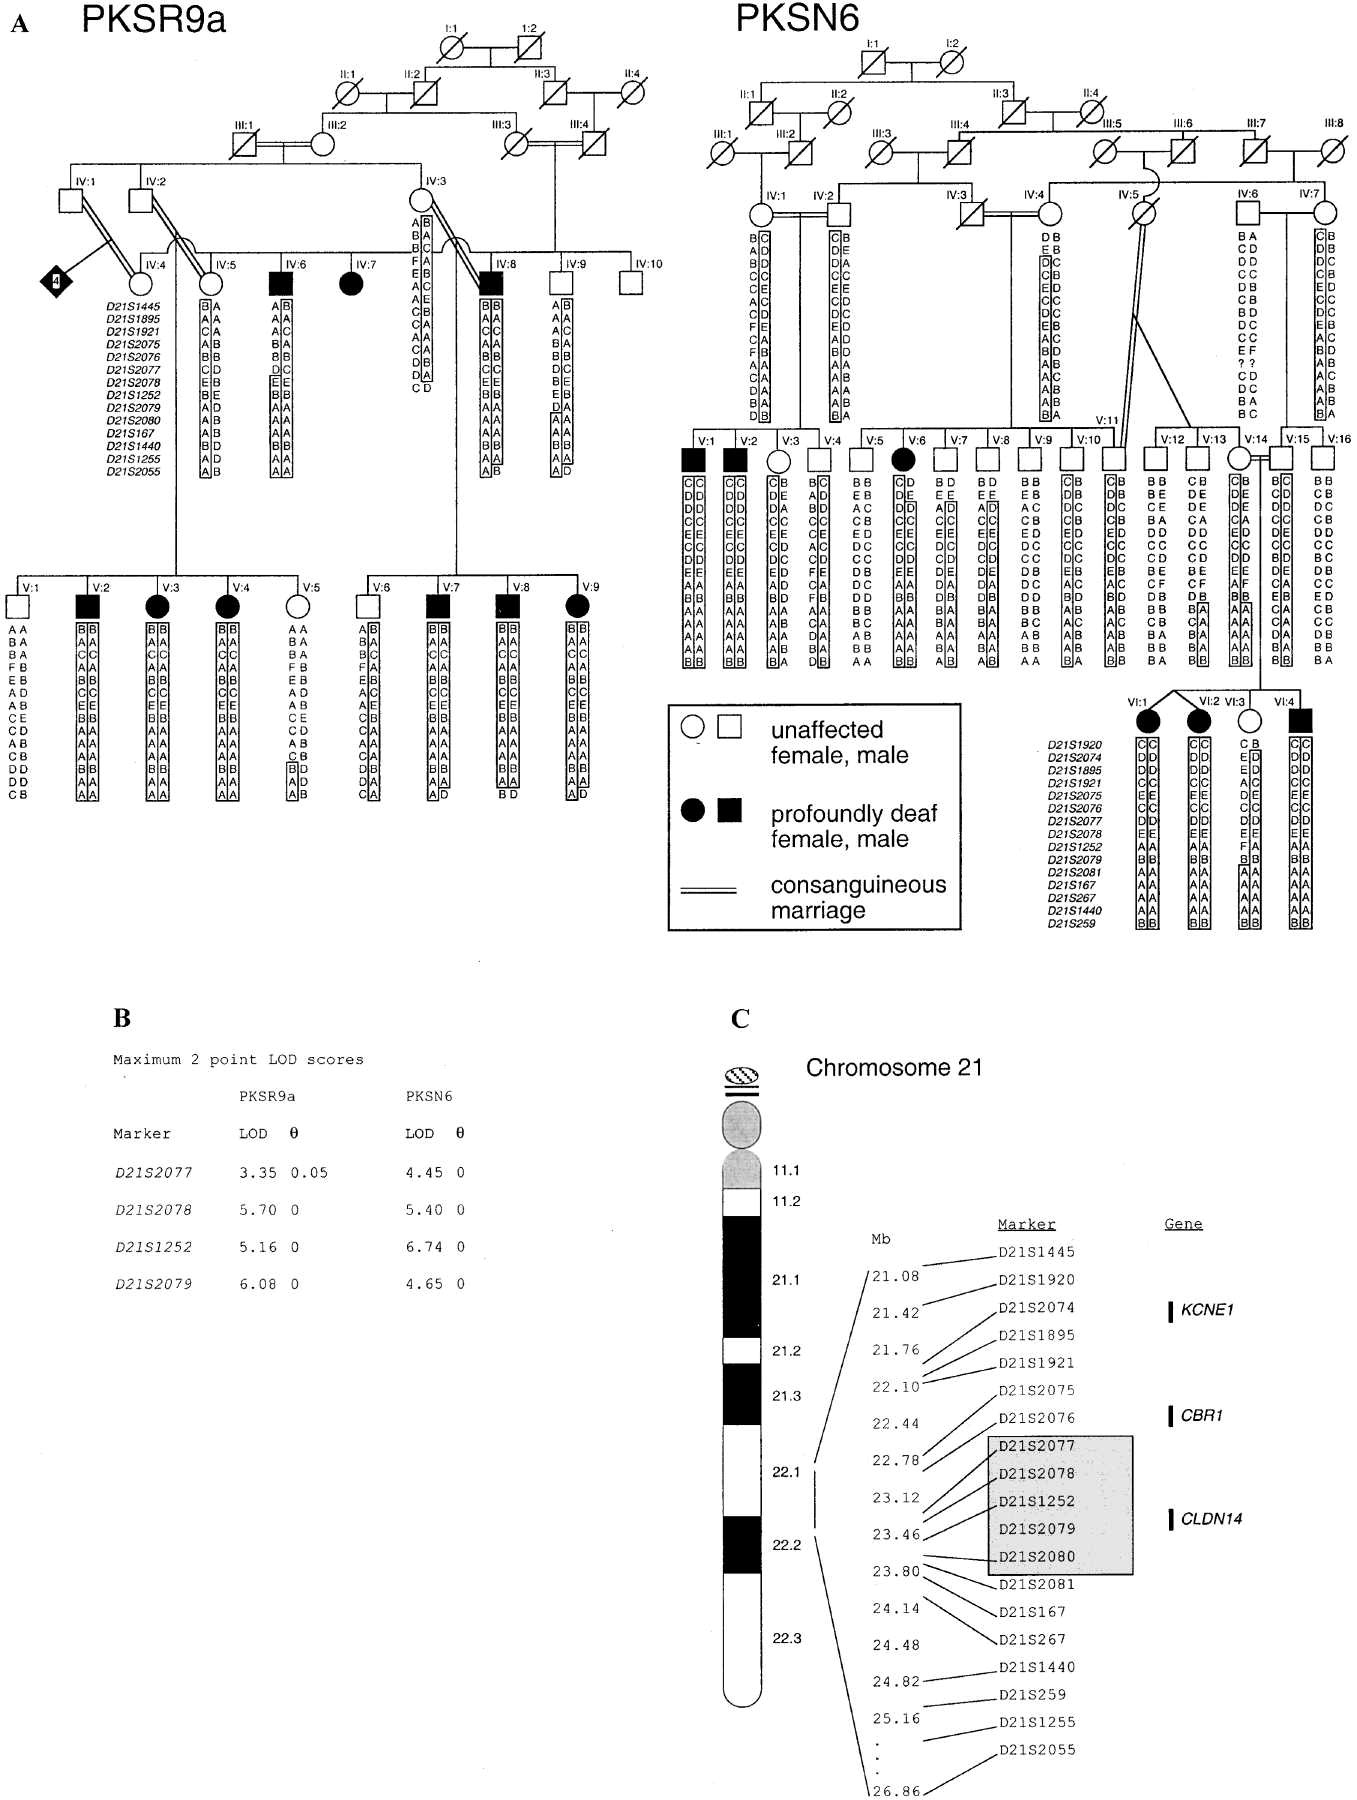 Mutations In The Gene Encoding Tight Junction Claudin 14